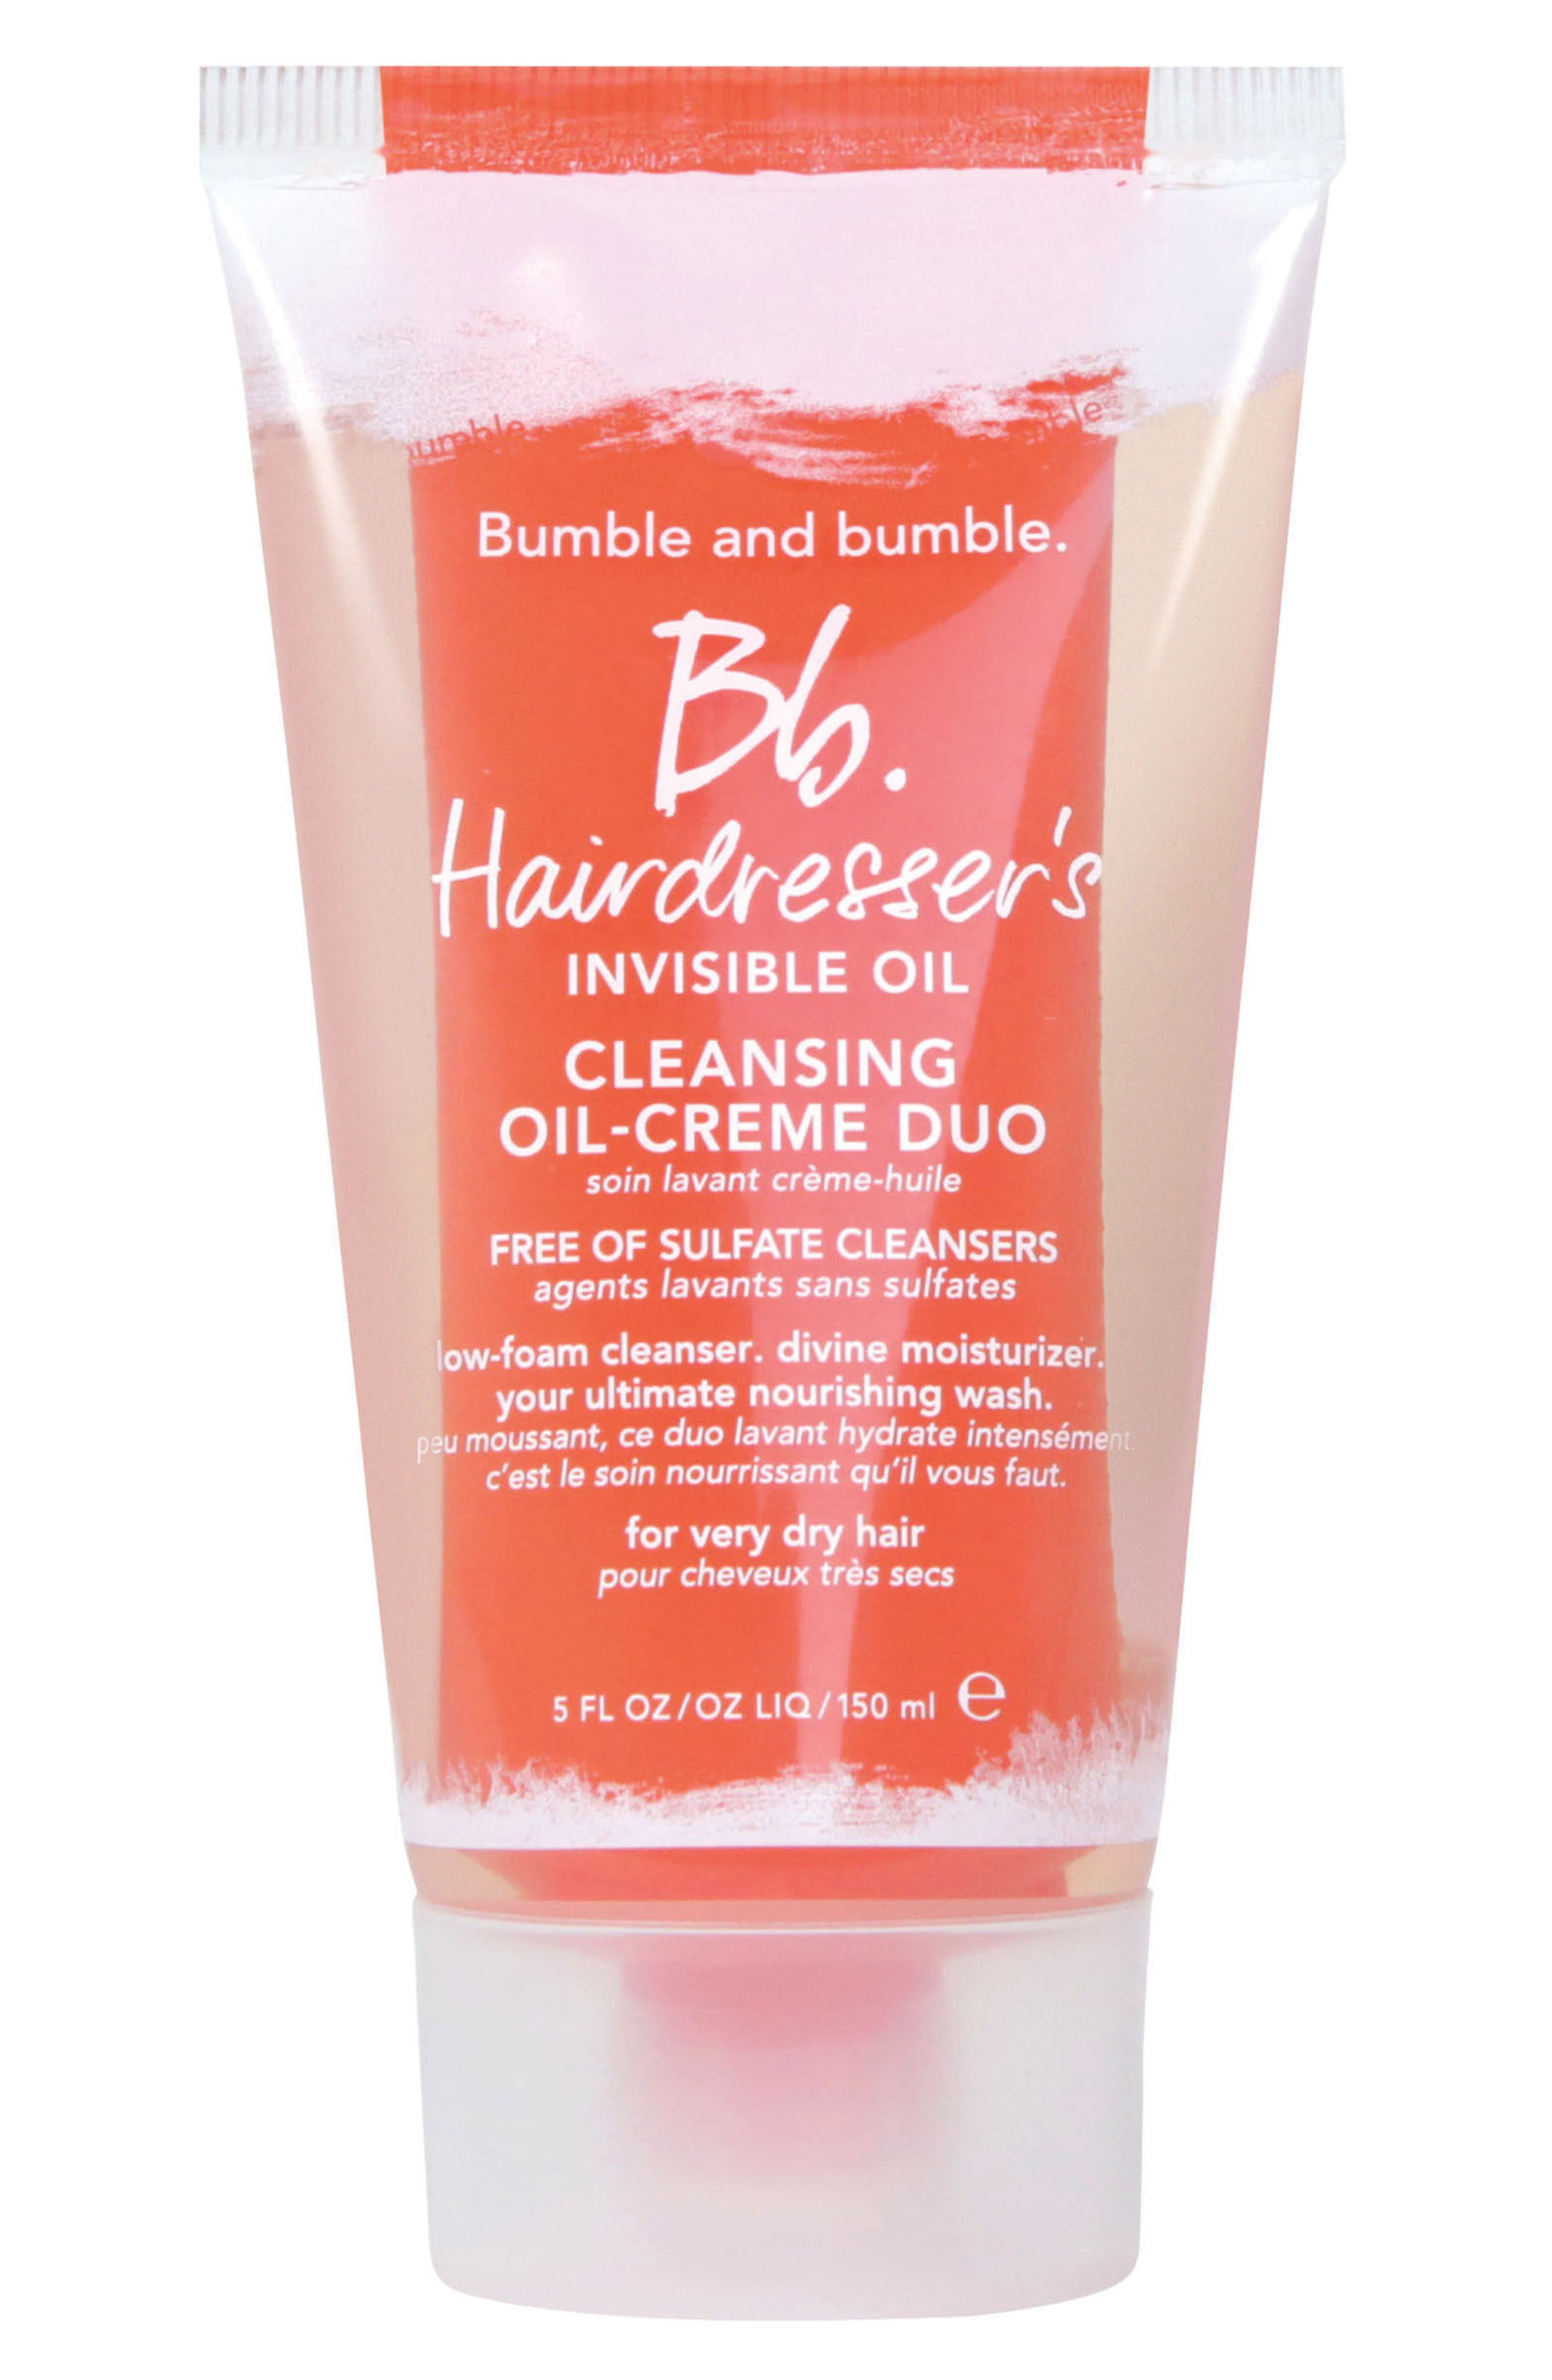 Hairdresser's Invisible Oil Cleansing Oil-Creme Duo,                             Main thumbnail 1, color,                             No Color